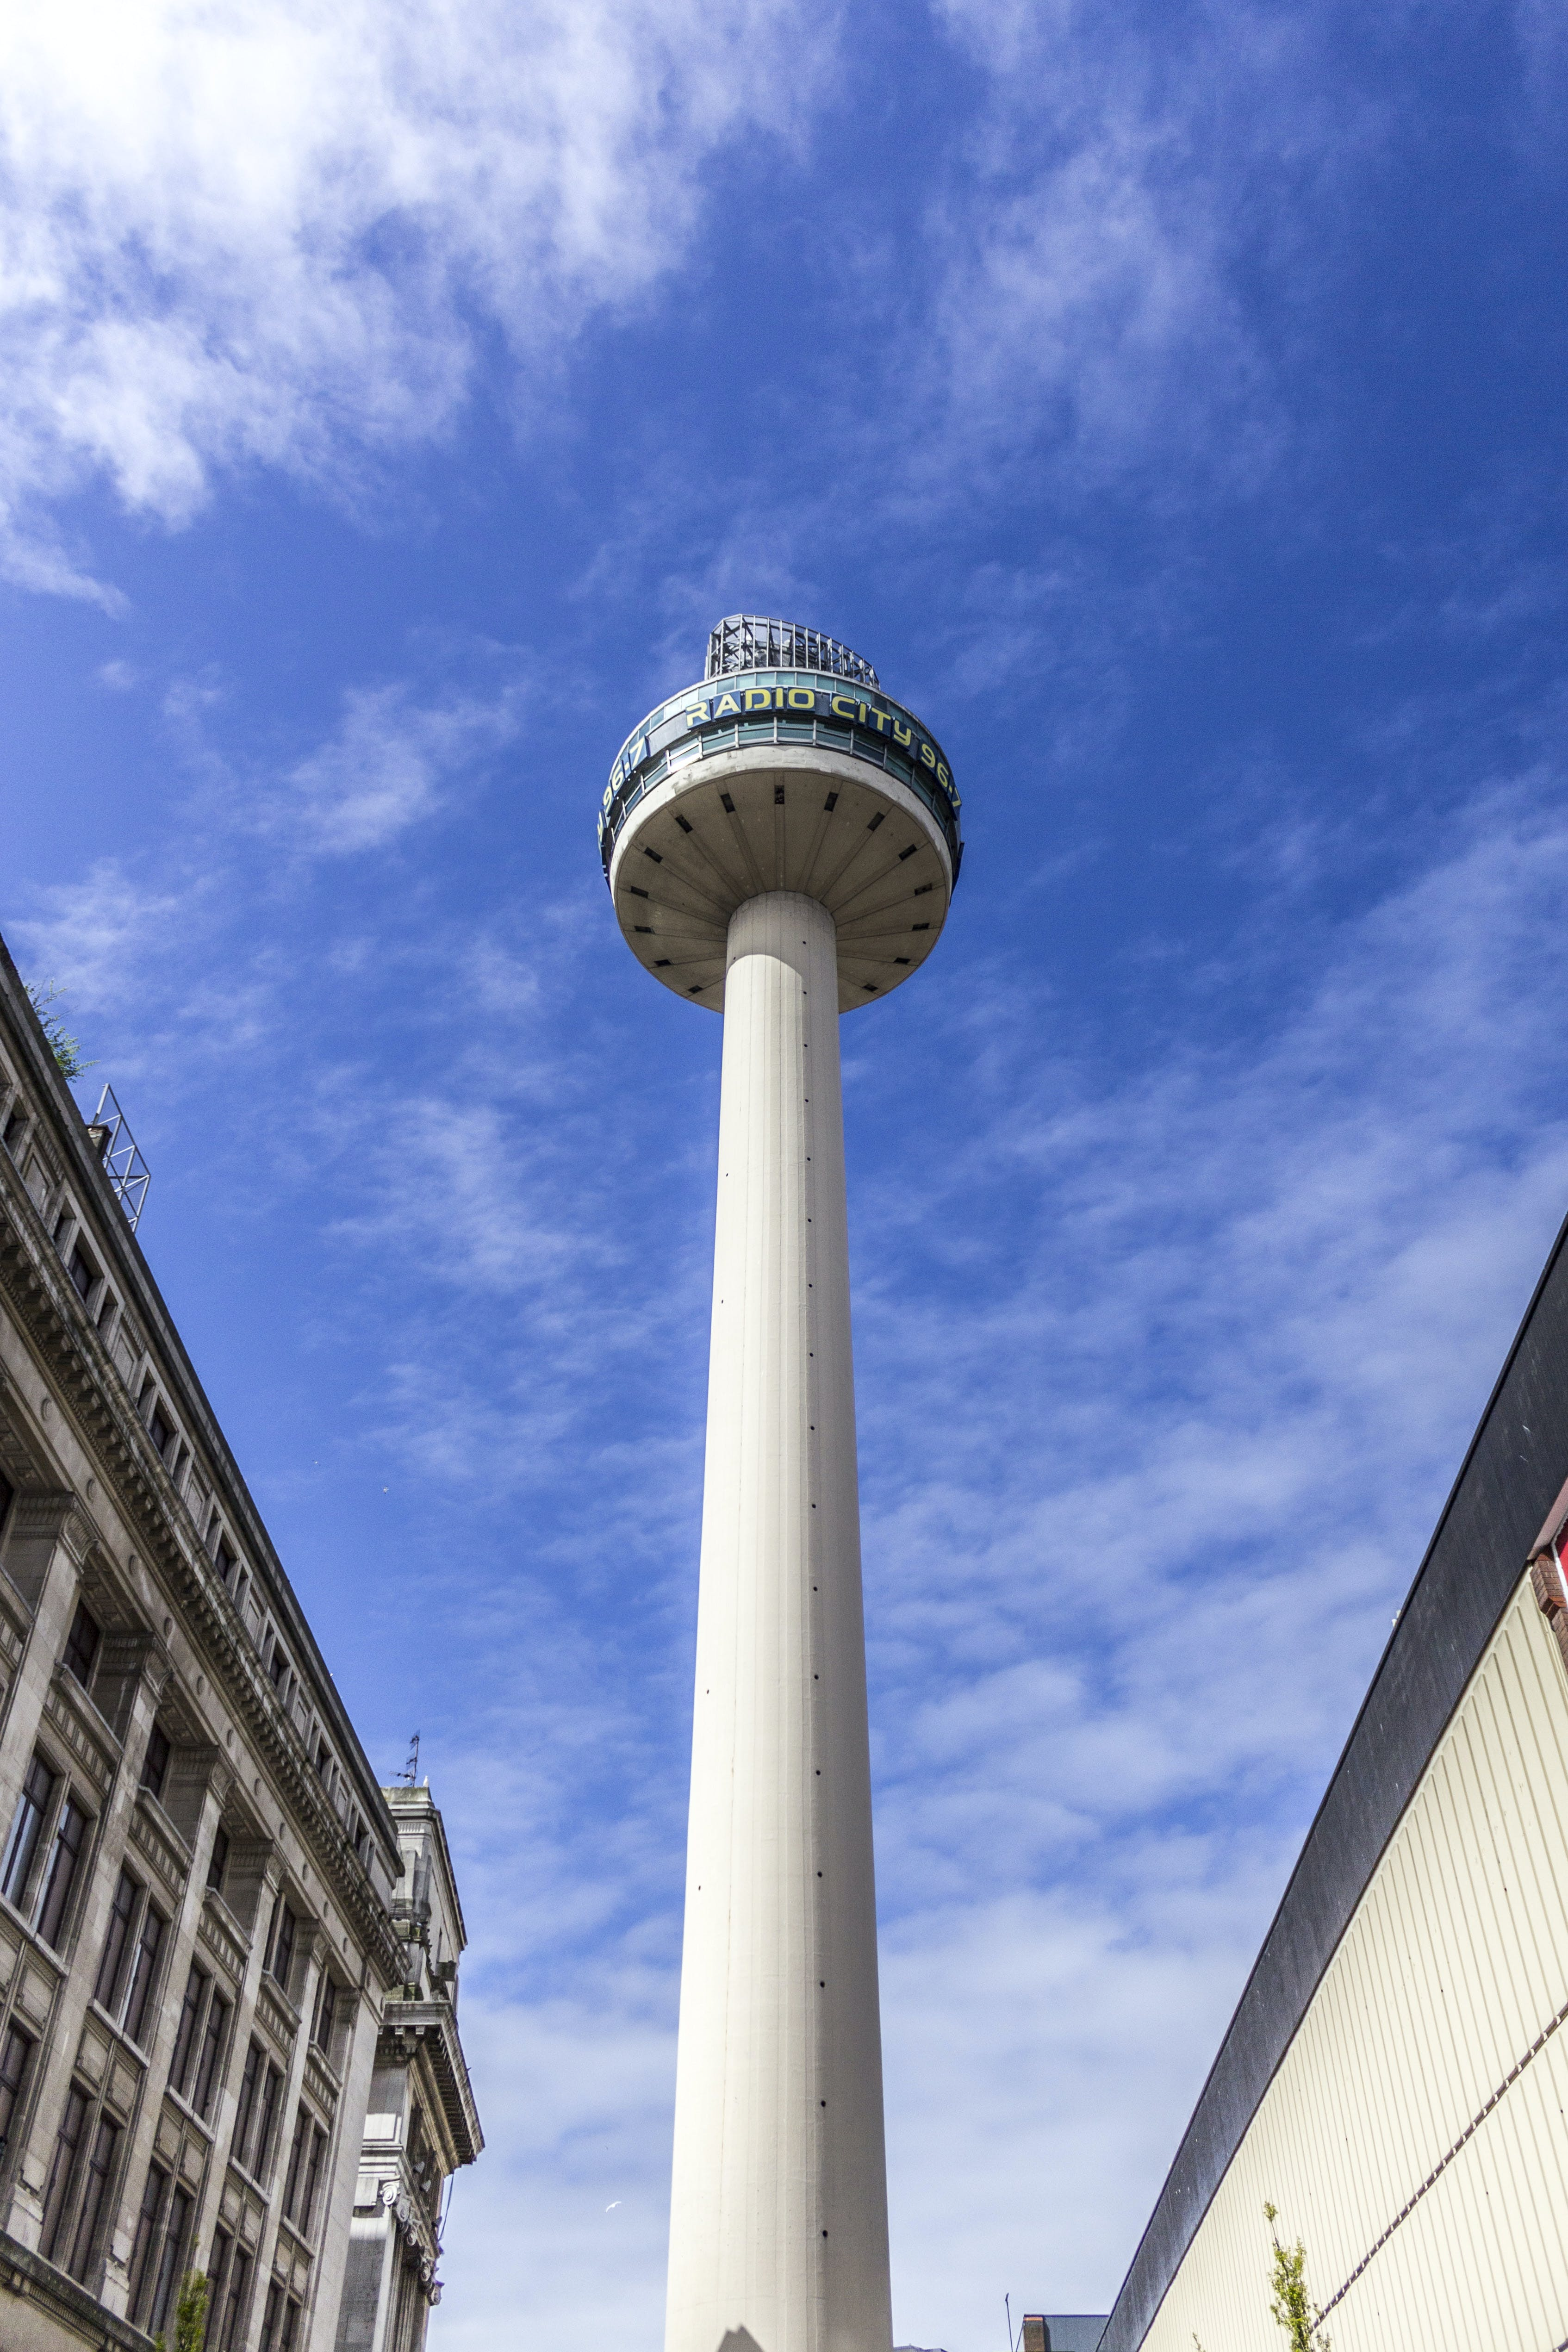 Free stock photo of Liverpool, observation tower, radio city, St John's Tower